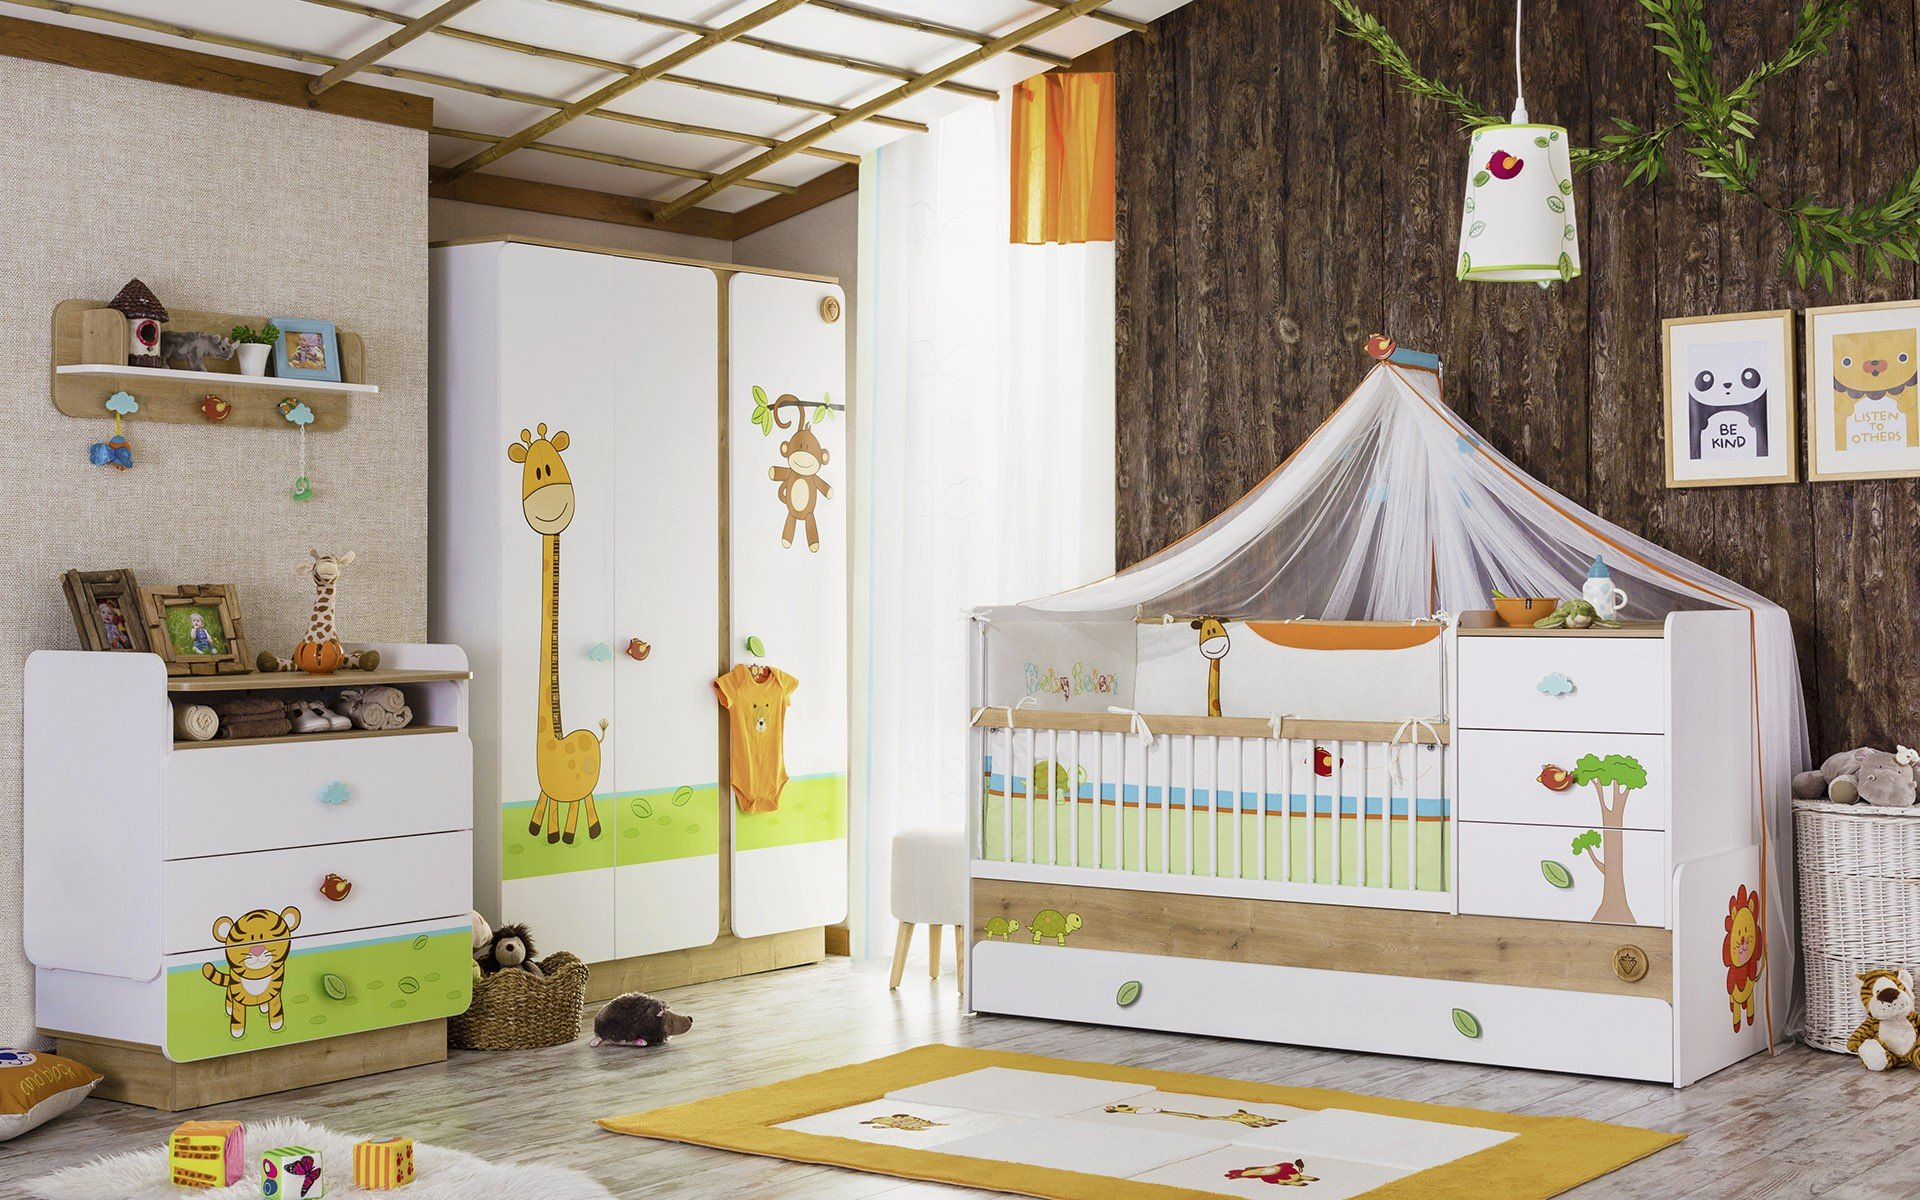 lassen sie die natur in das babyzimmer herein jetzt lesen. Black Bedroom Furniture Sets. Home Design Ideas